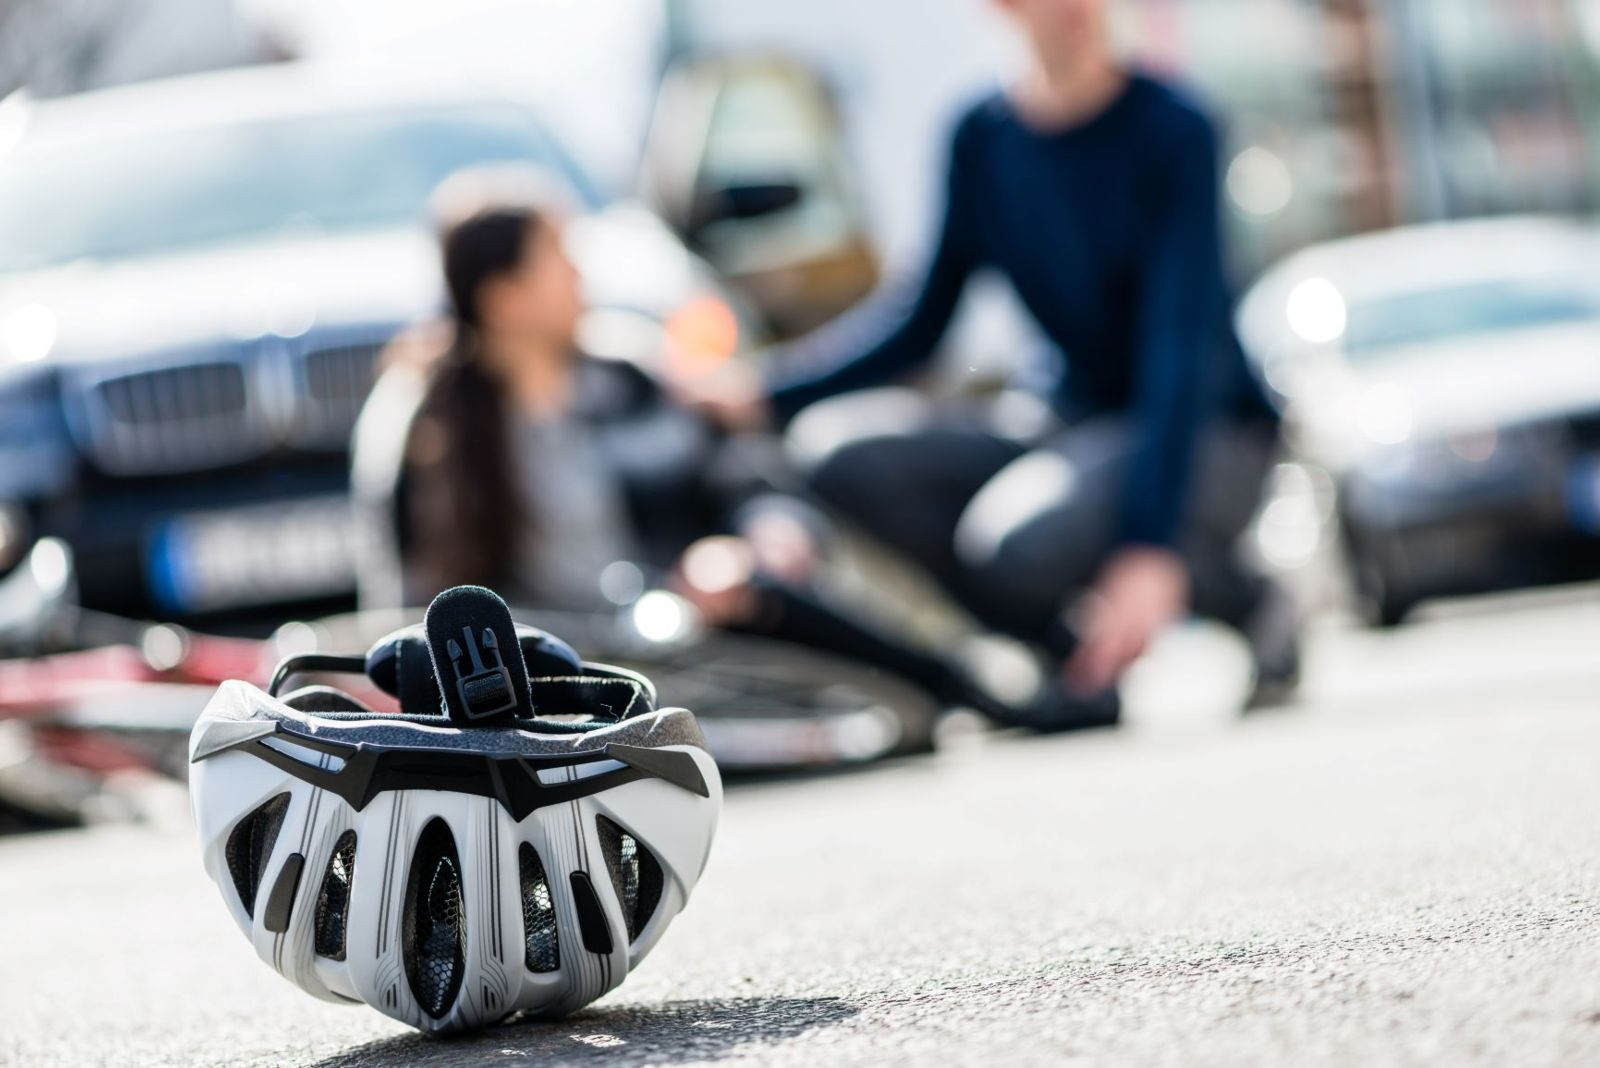 What to Do After a Car Hits You While Riding Your Bicycle